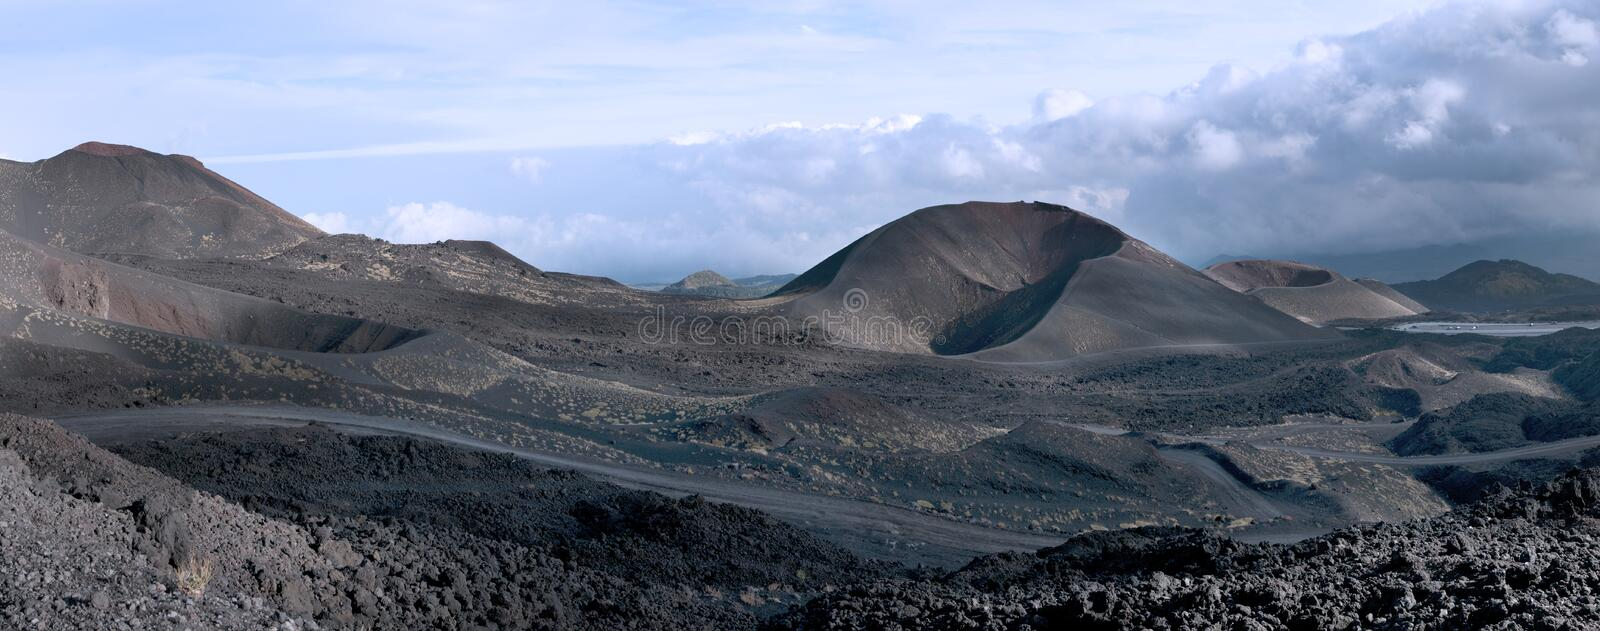 A lateral crater, Mount Etna, Sicily. The landscape with a lateral crater, Mount Etna, Sicily stock image